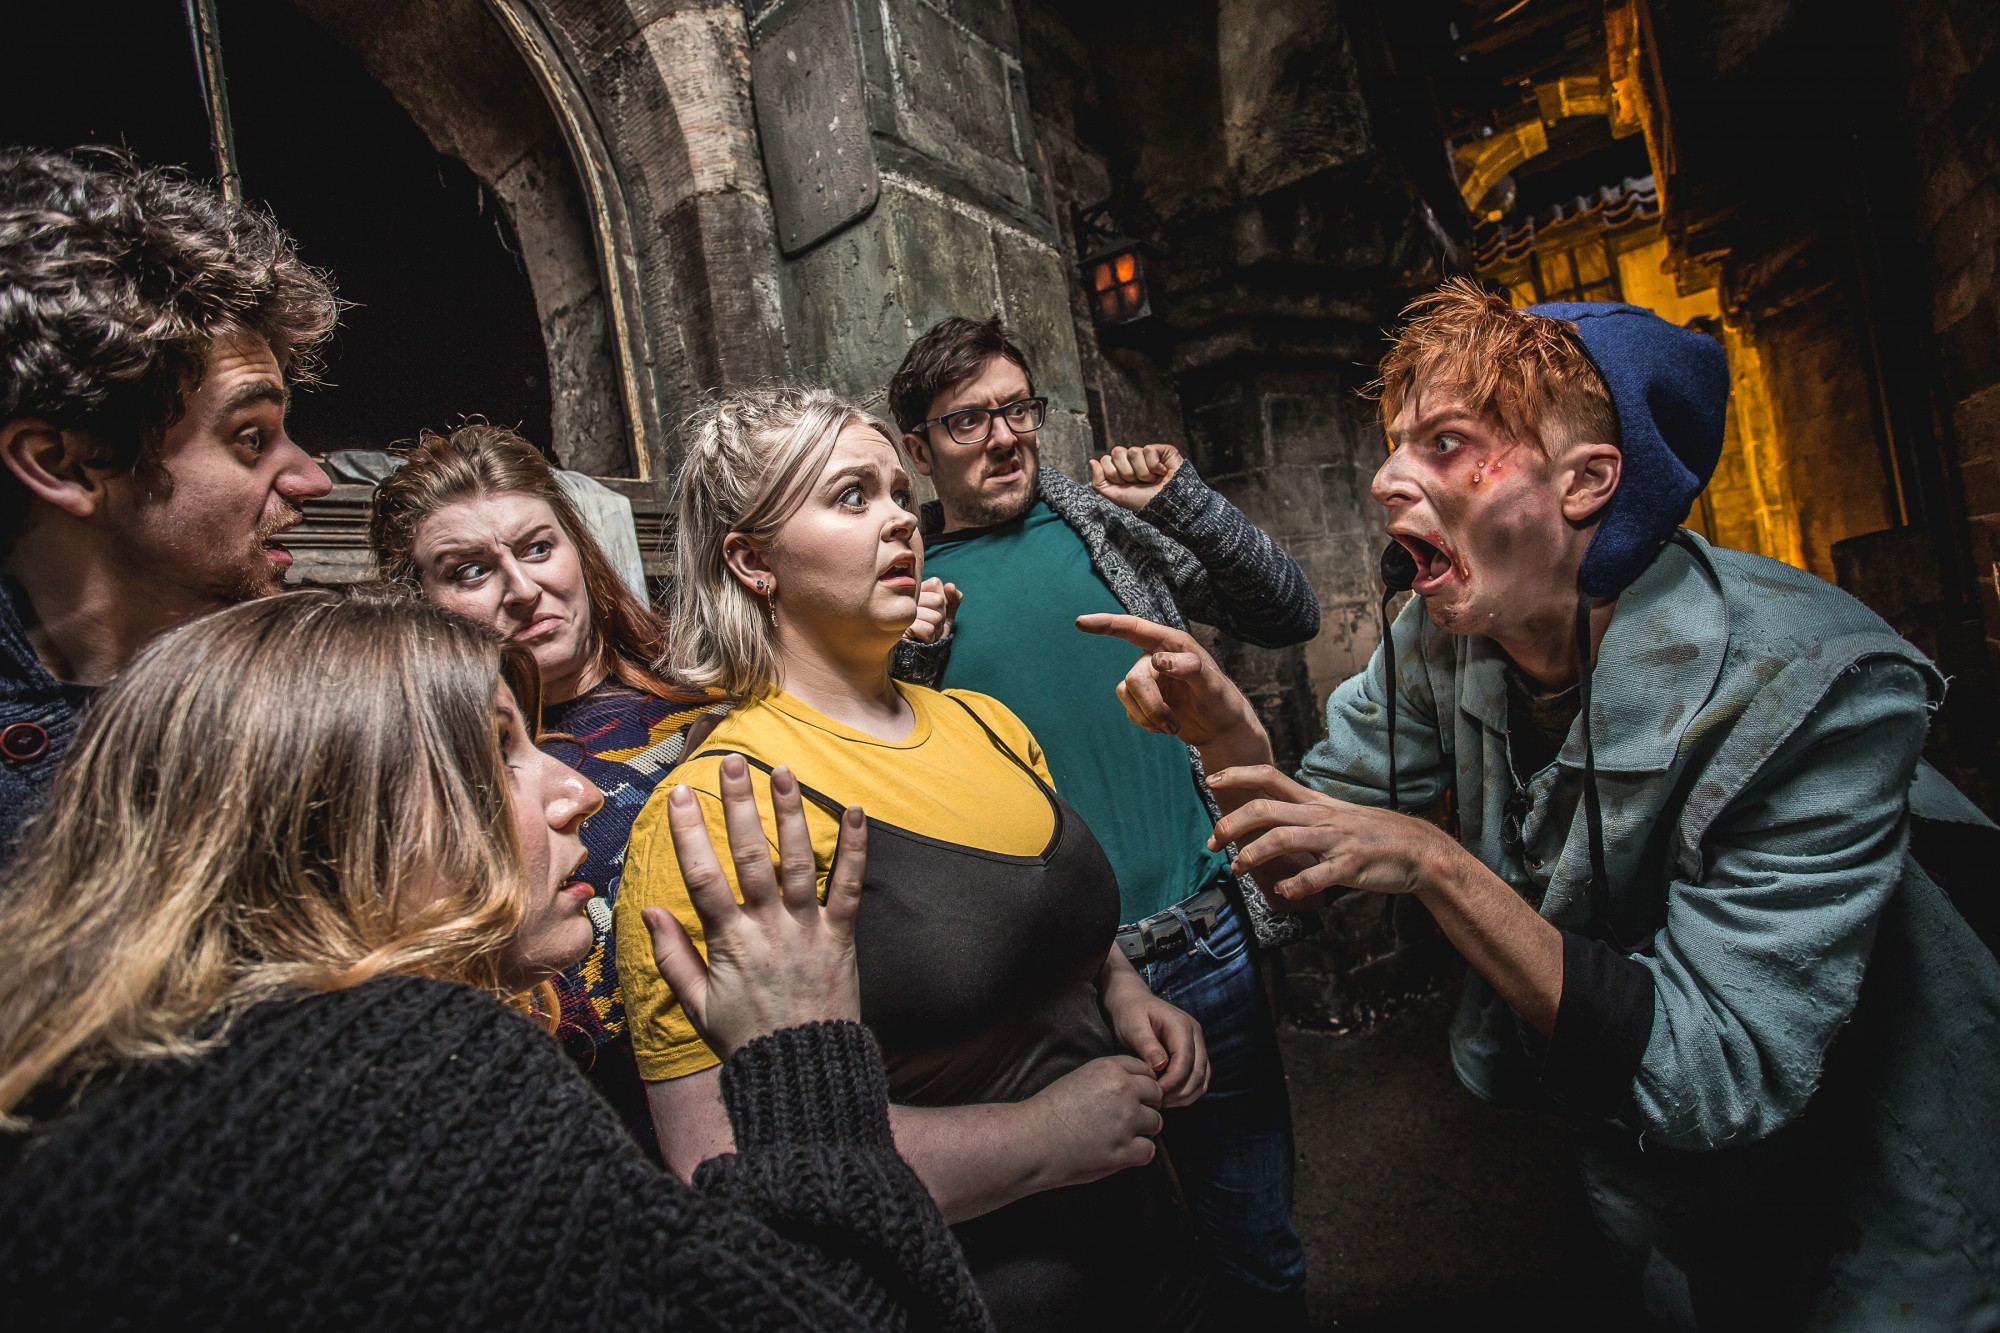 A man scaring adults at the edinburgh dungeon